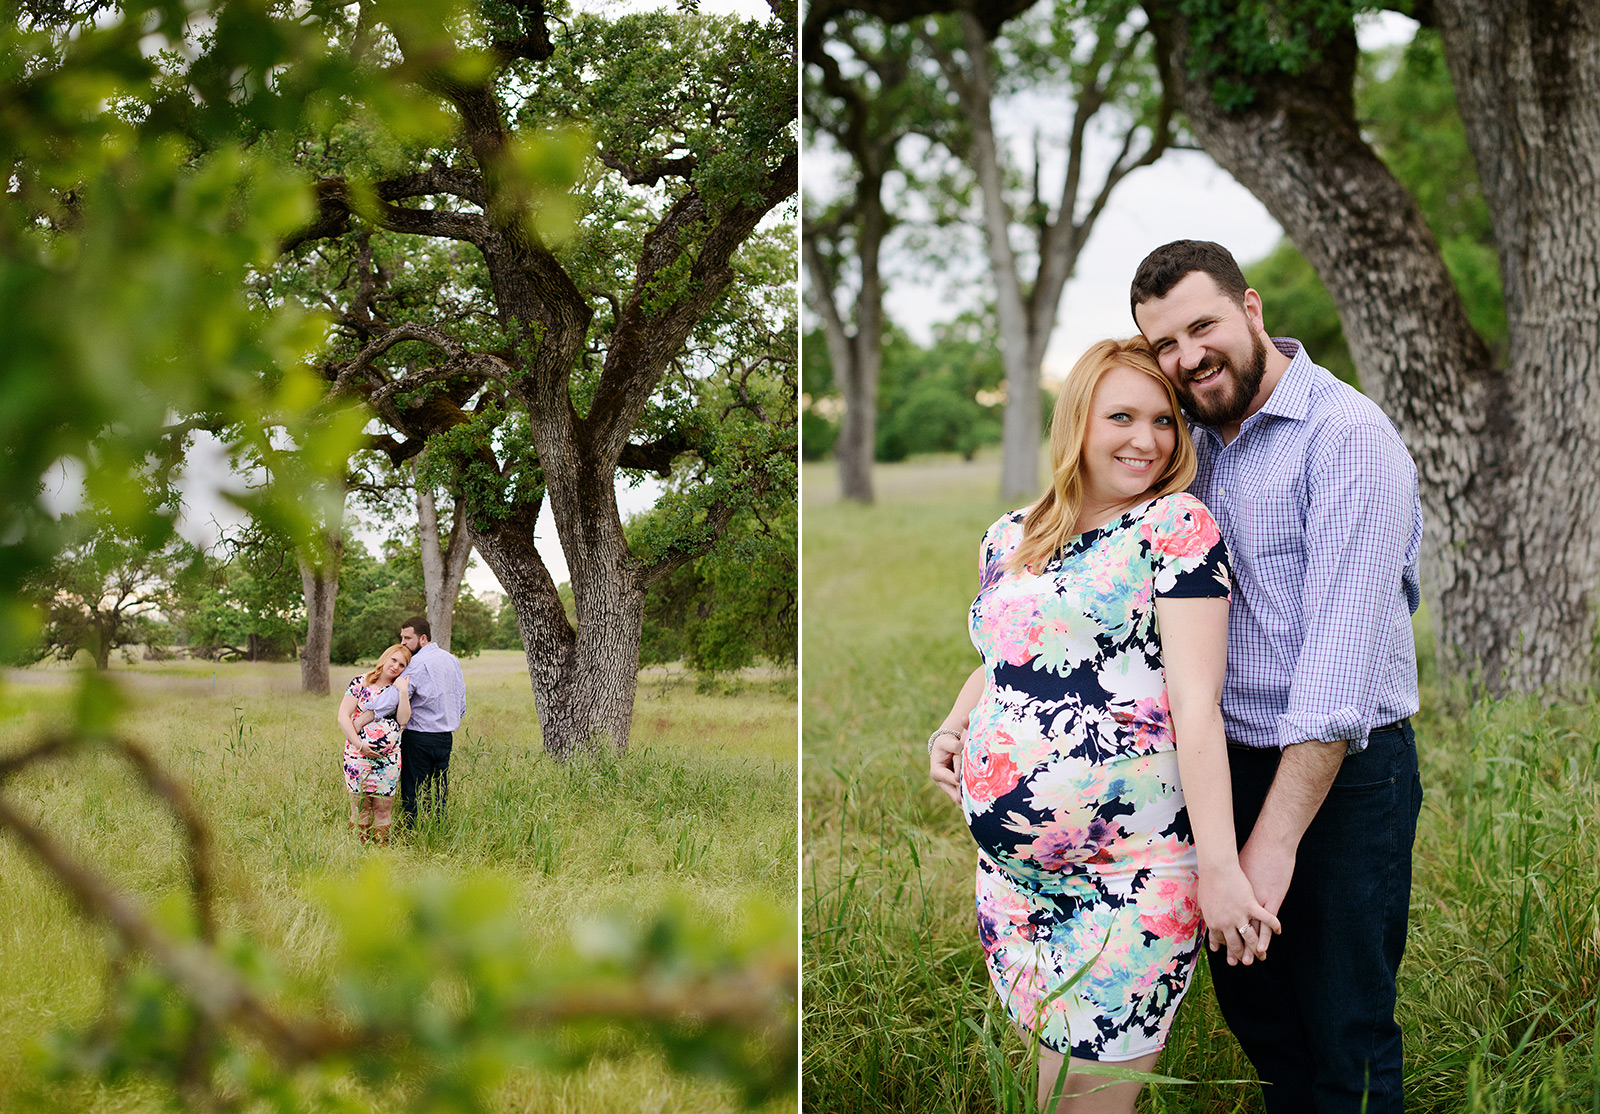 Maternity session outdoors in folsom holding hands in their pregnancy photos